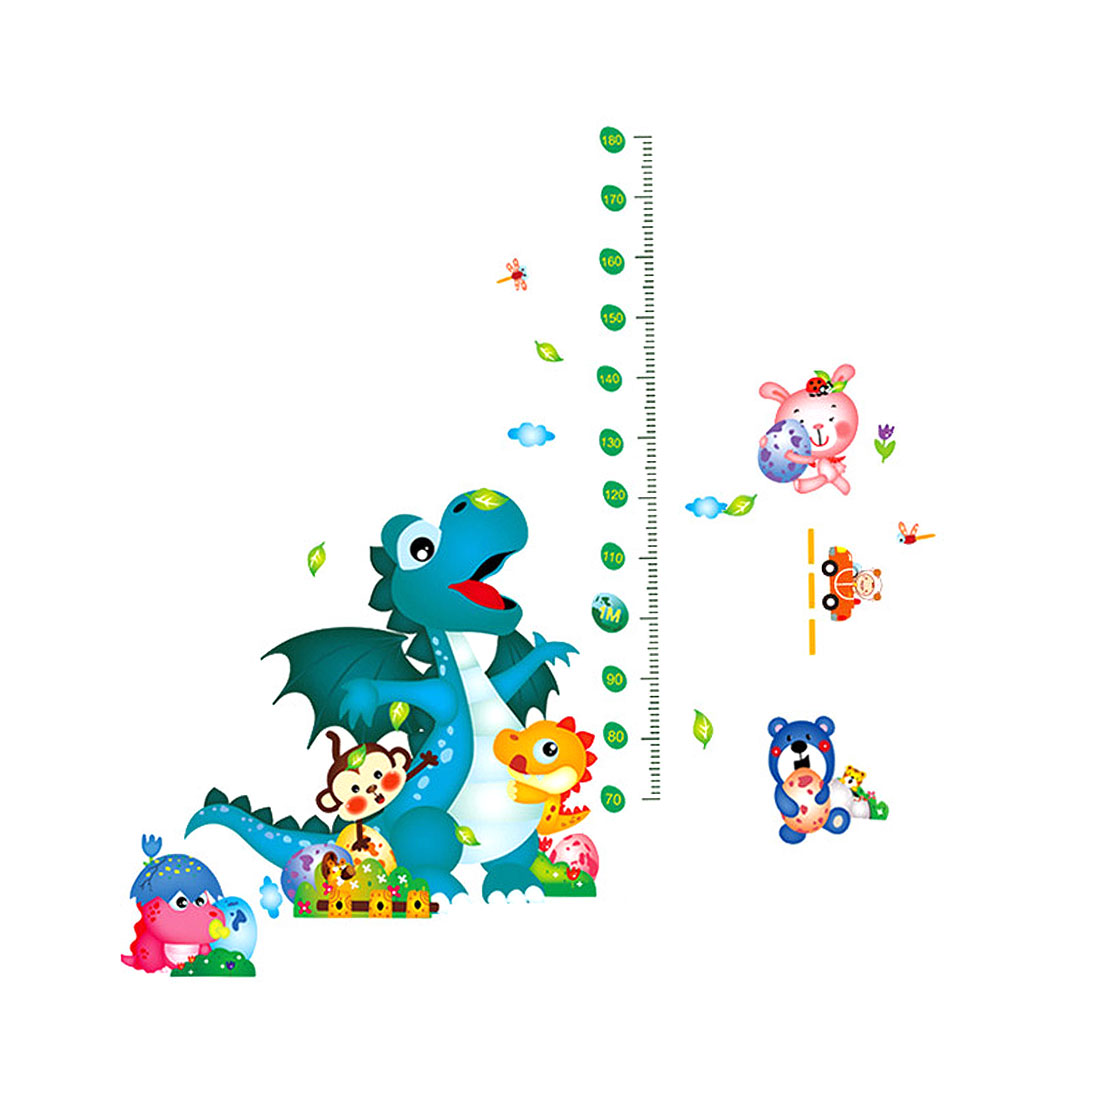 Home PVC Decor Cartoon Height Measure DIY Wallpaper Chart Pattern Wall Sticker Multi-color